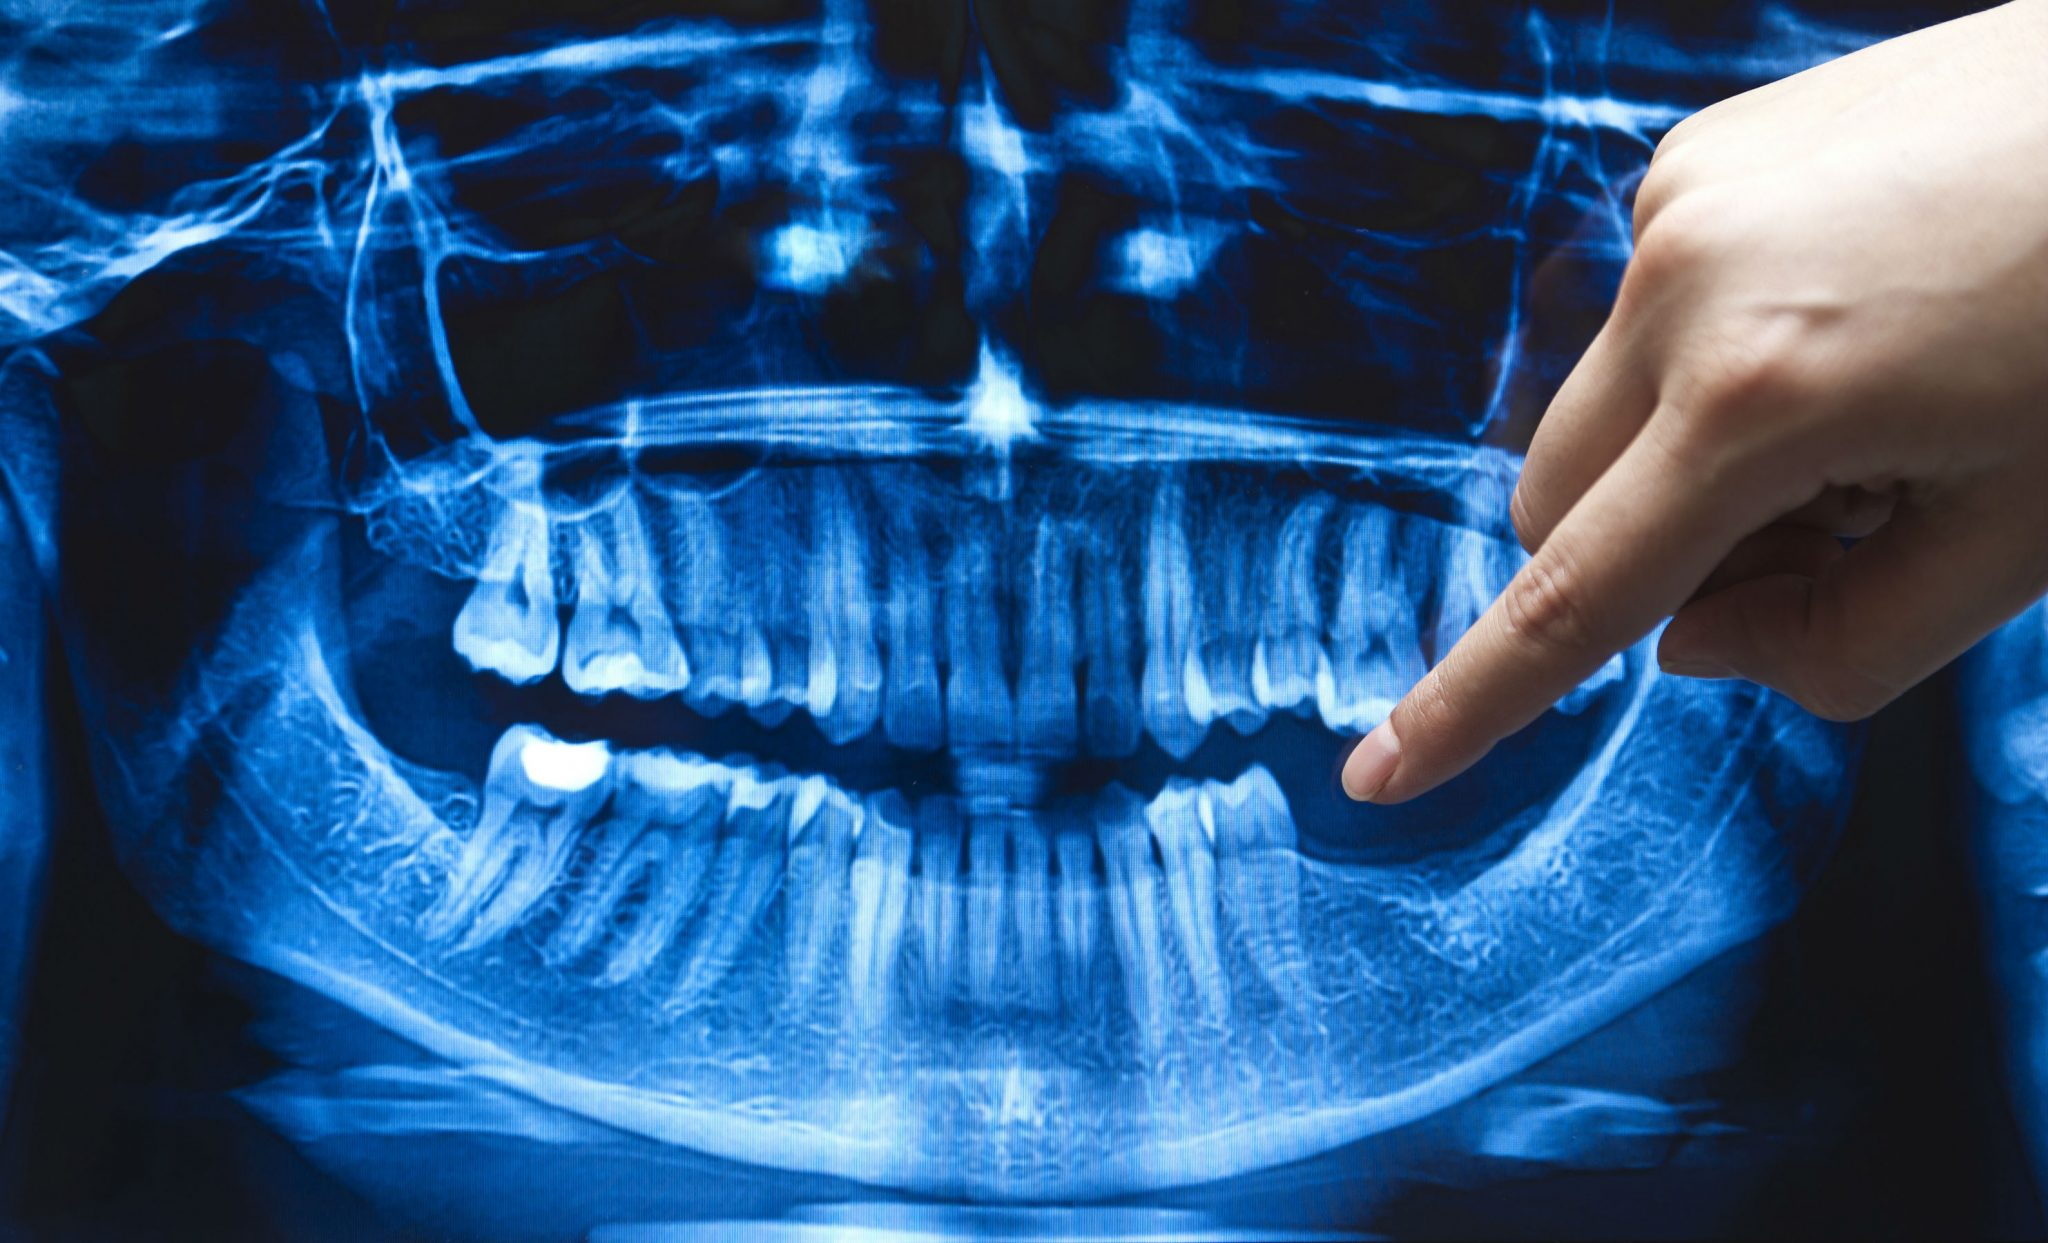 xray print of mouth for cosmetic dental procedures at best dentist near me